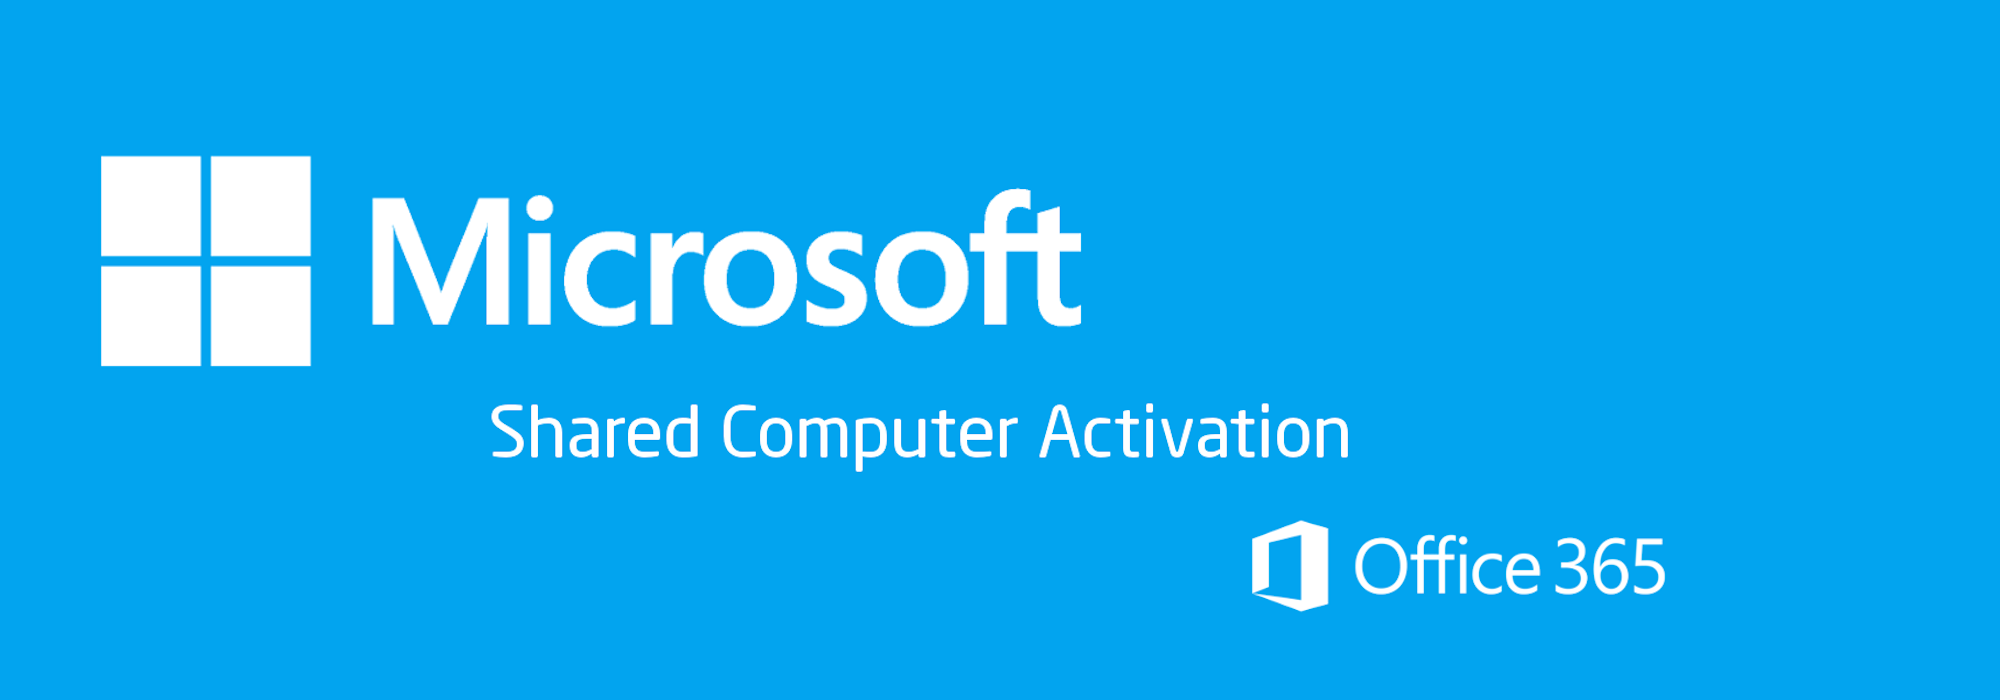 Microsoft Shared Computer Activation